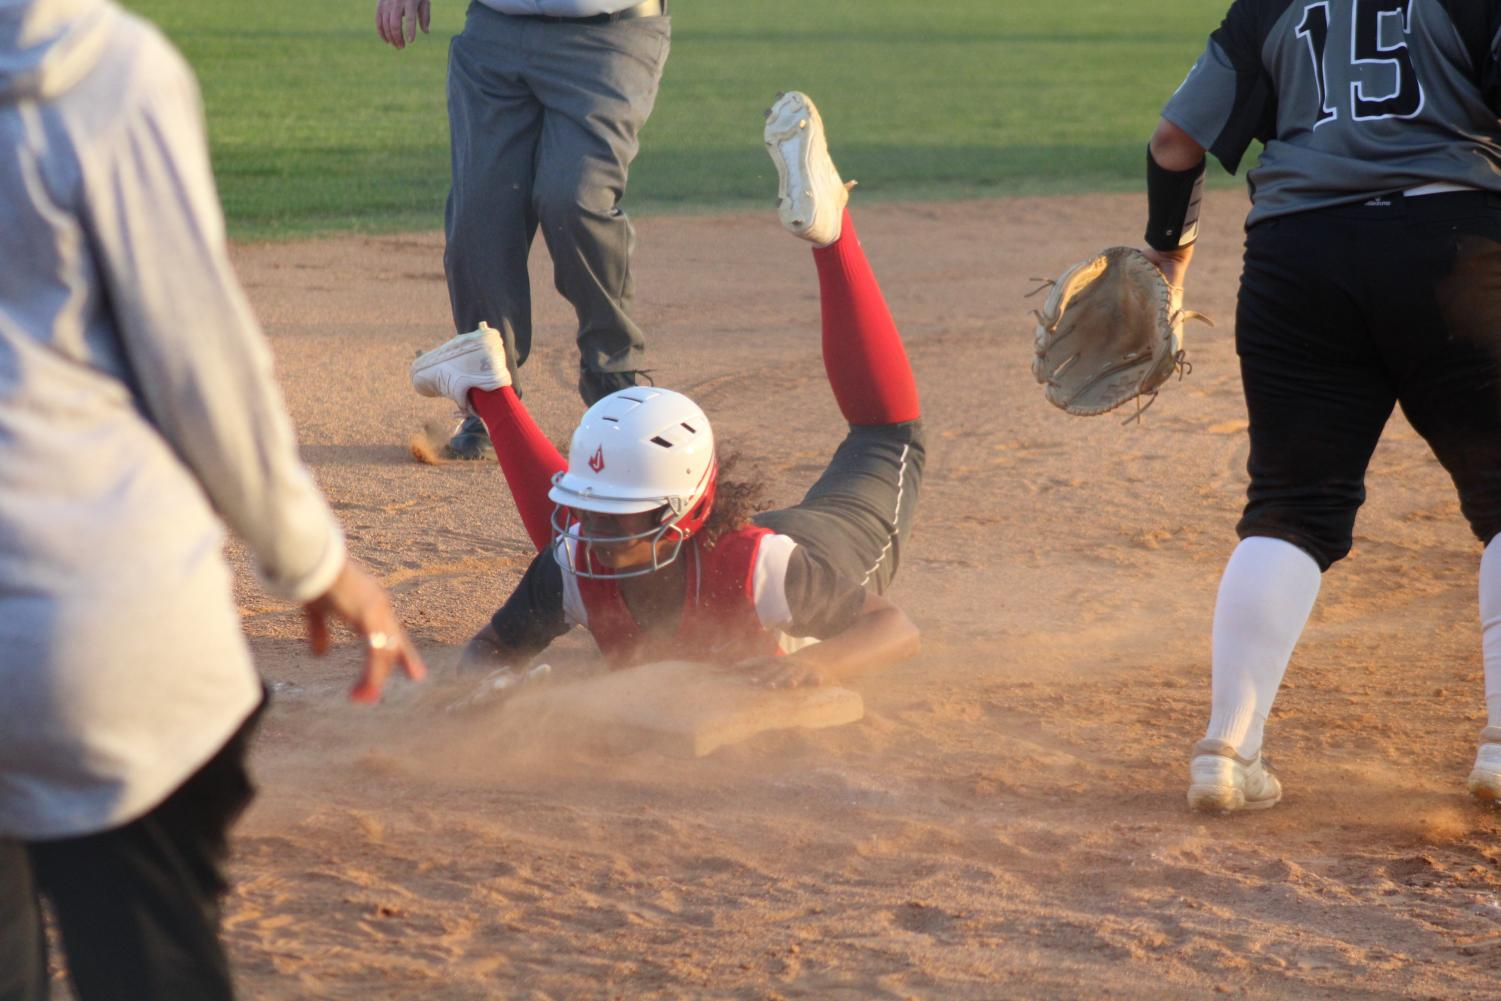 Freshman Keely Williams slides into third base. The Rockets are on a roll, with San Marcos coming up next this Friday.